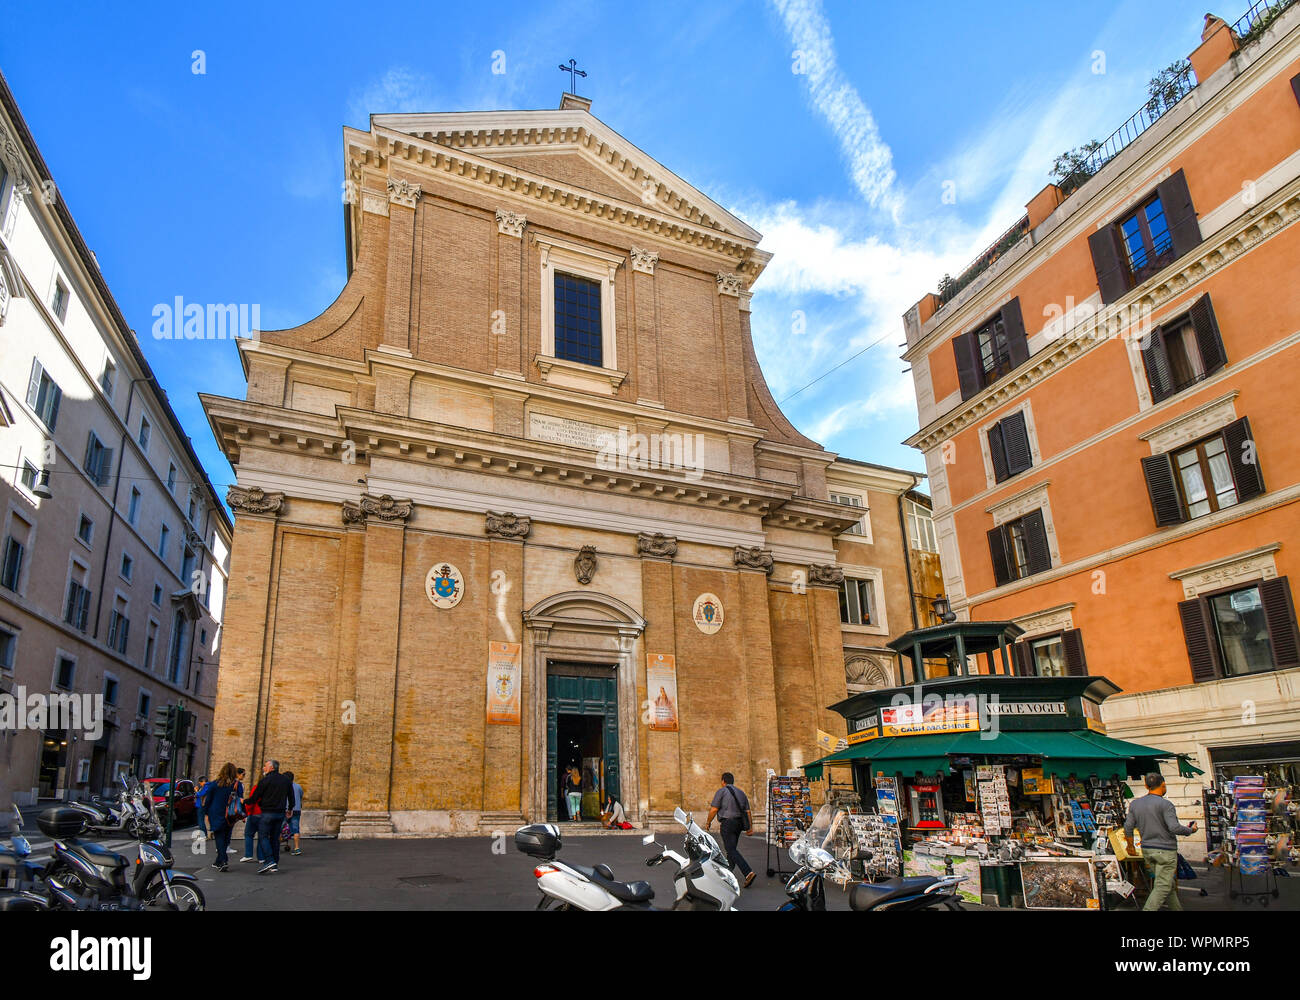 Tourists pass by a small news paper stand outside the Sant'Andrea delle Fratte church in the historic center of Rome, Italy. Stock Photo